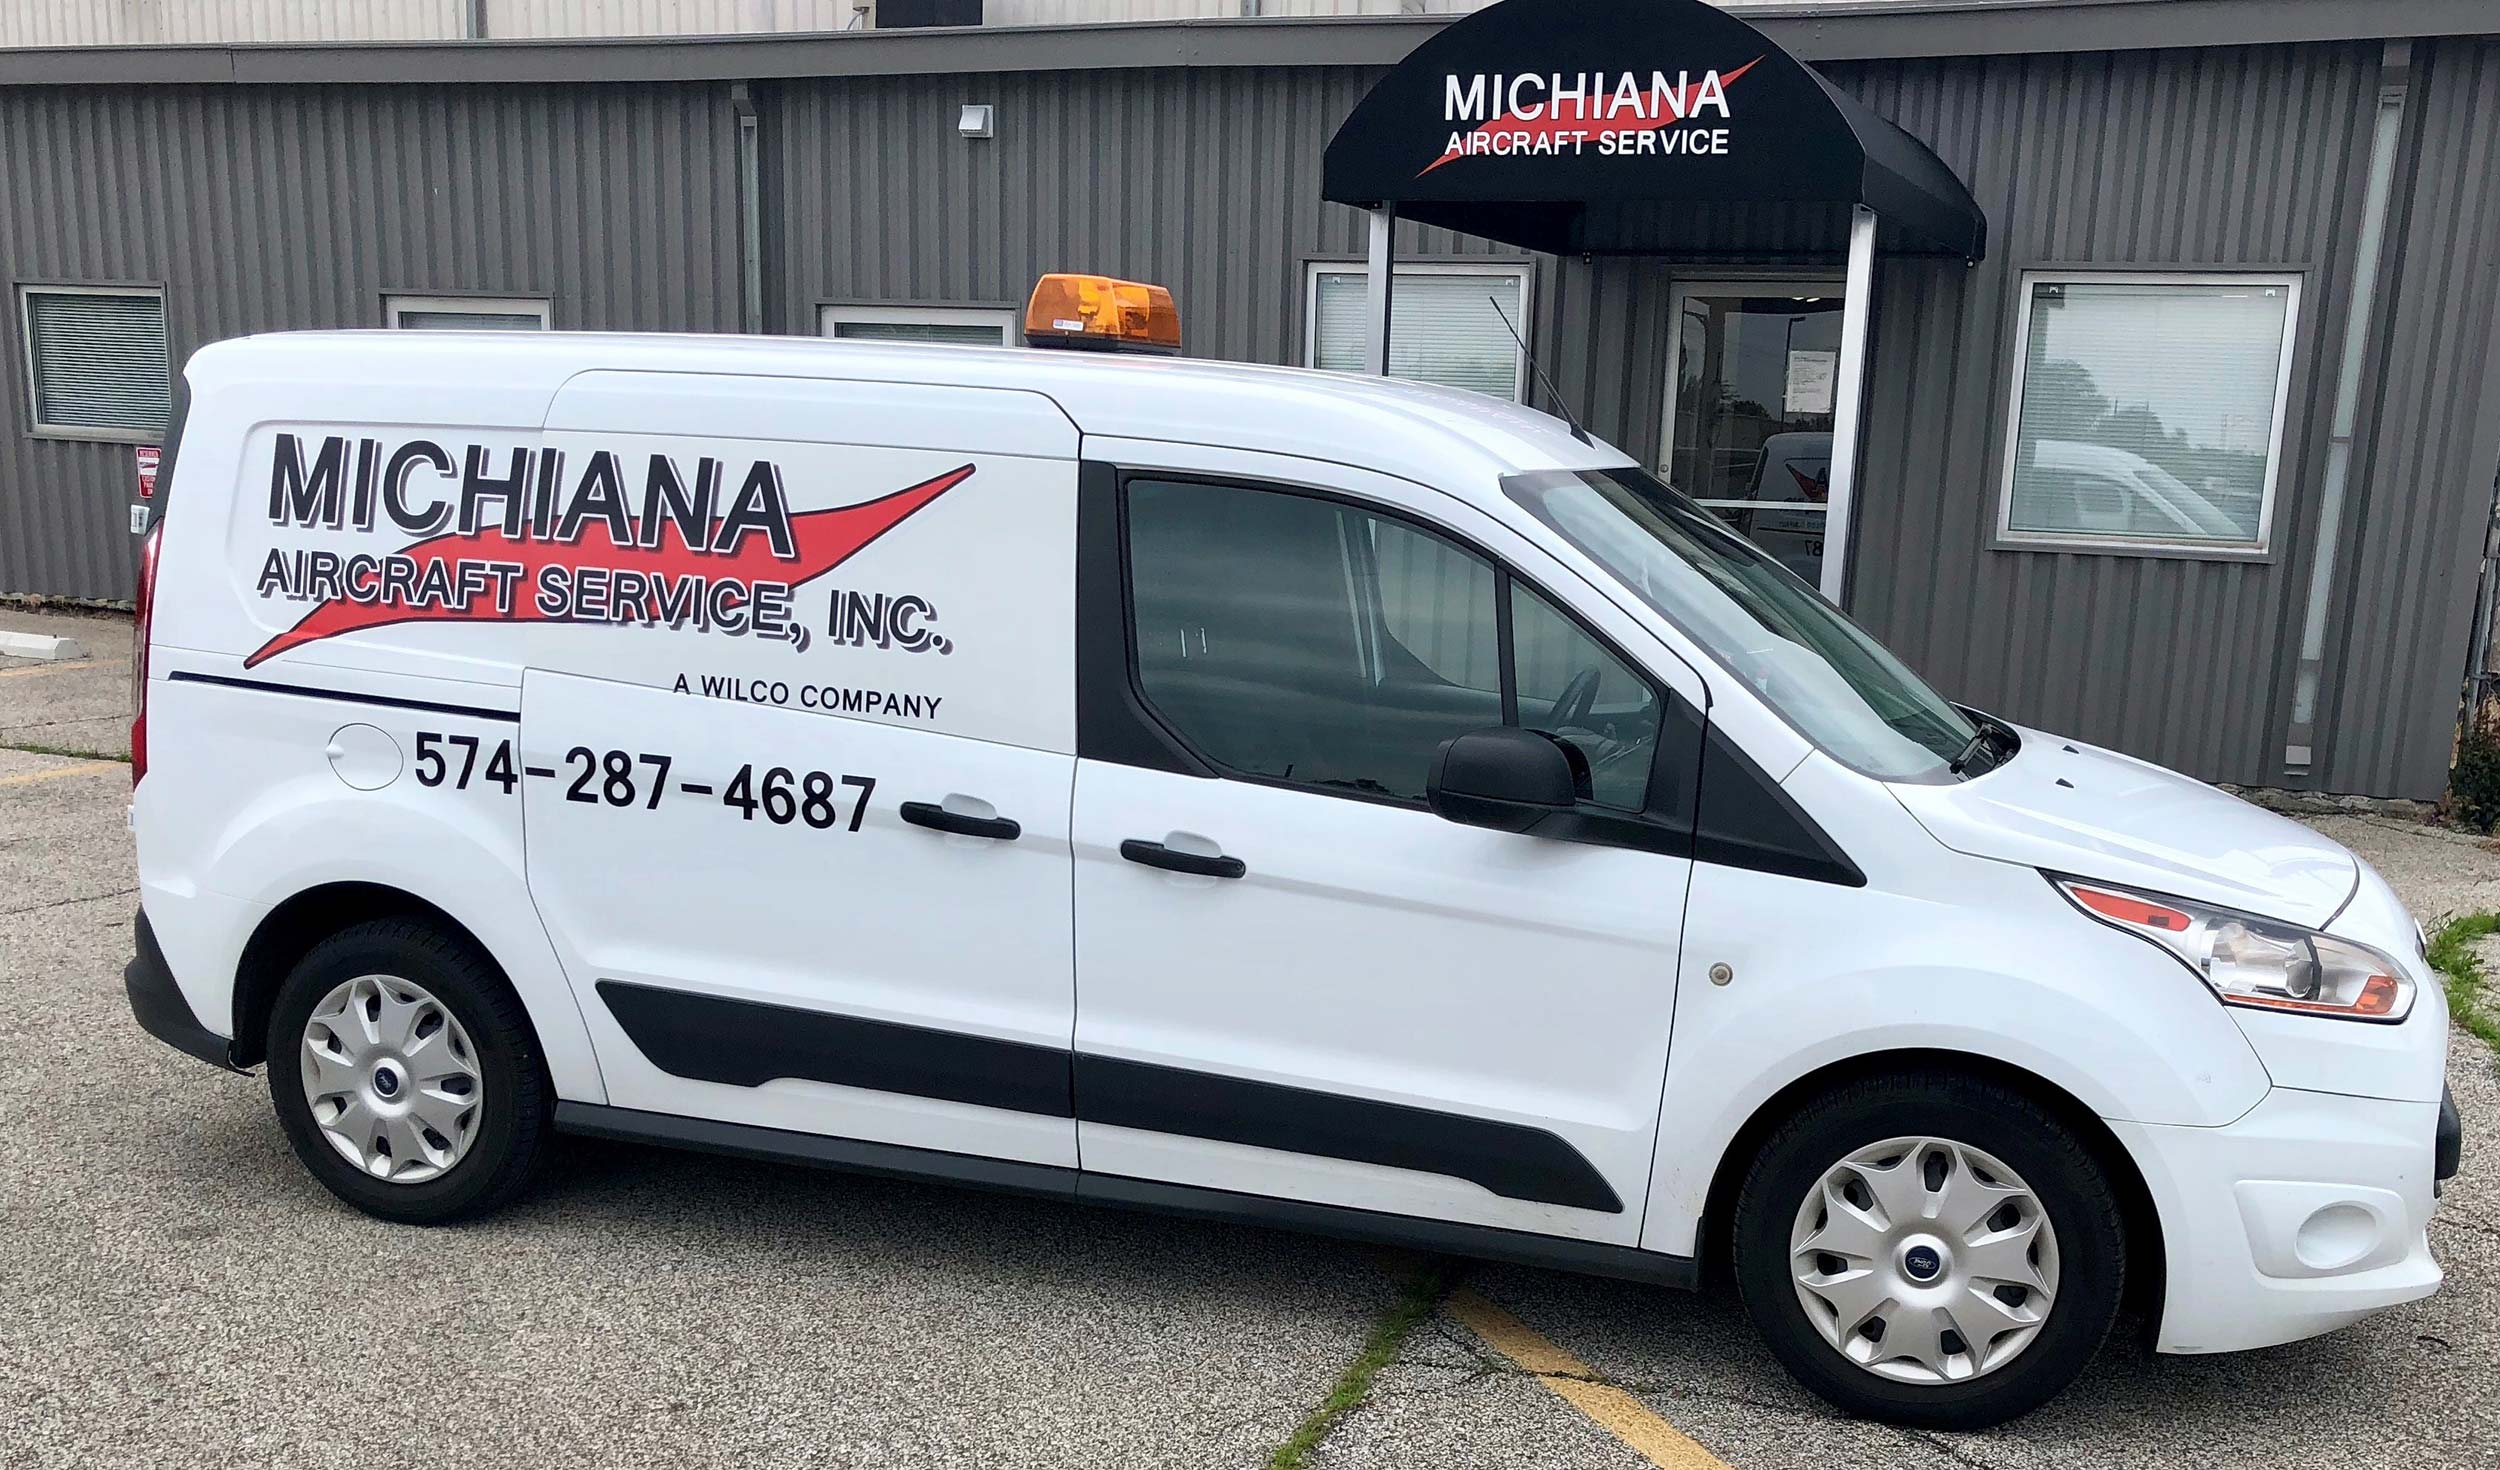 Michiana Aircraft Service Inventory